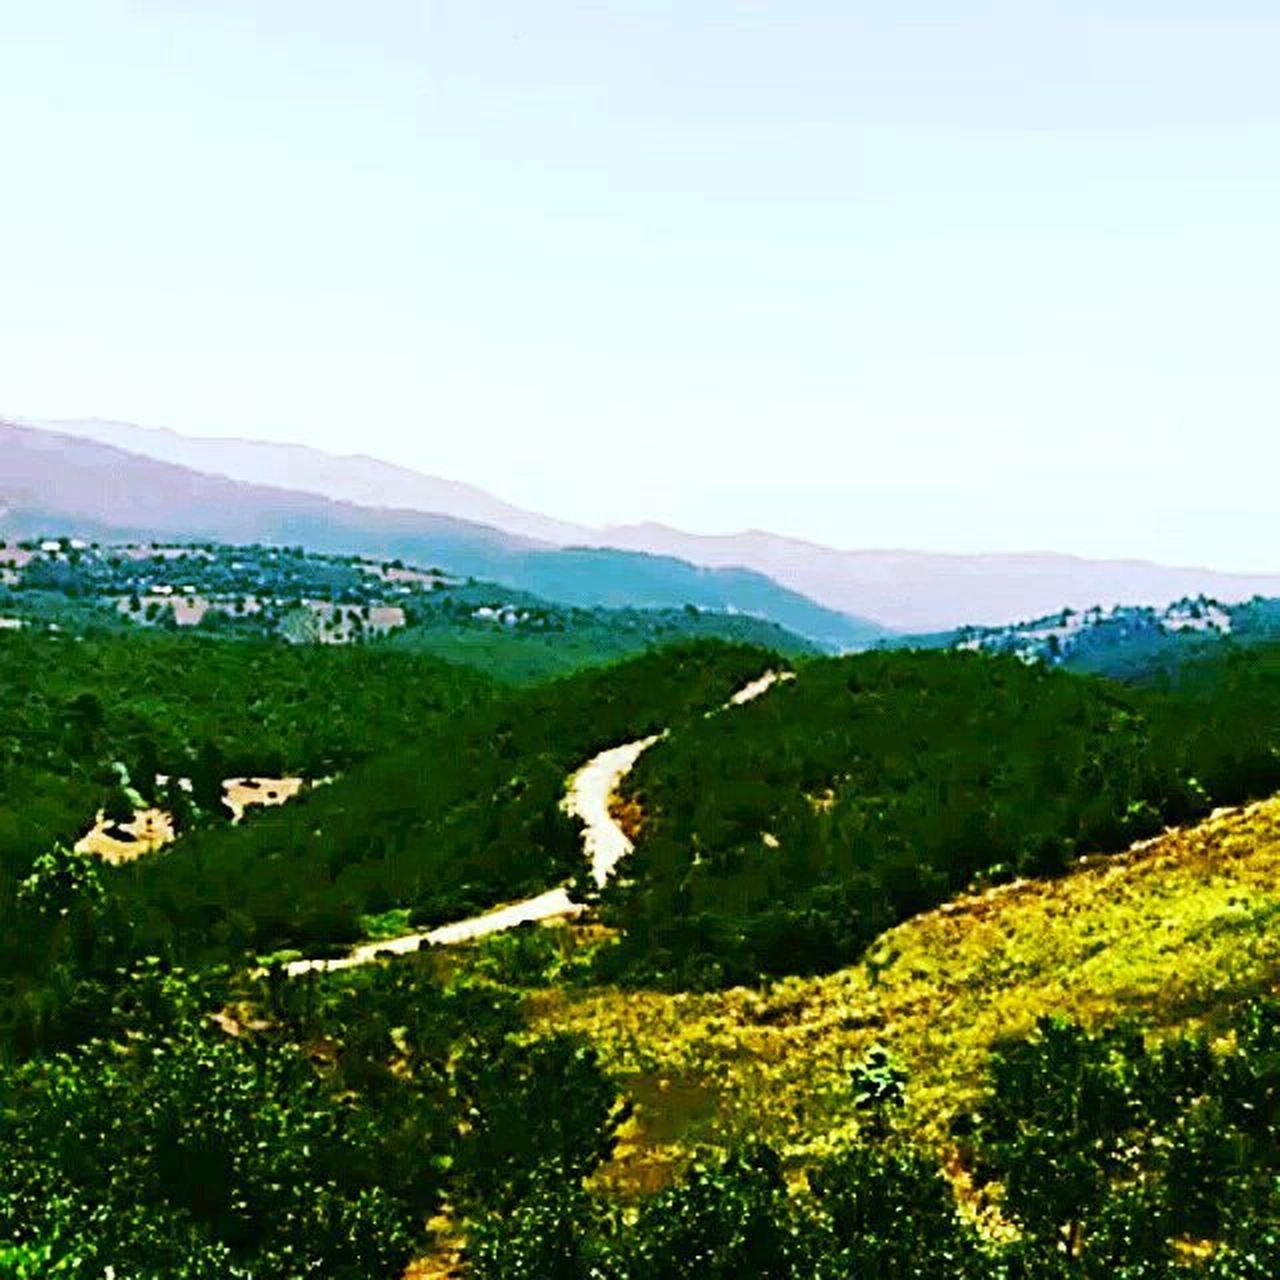 mountain, scenics, nature, landscape, tranquil scene, green color, mountain range, rural scene, beauty in nature, field, lush foliage, outdoors, day, tree, agriculture, no people, sunlight, forest, tranquility, yellow, travel destinations, clear sky, sky, freshness